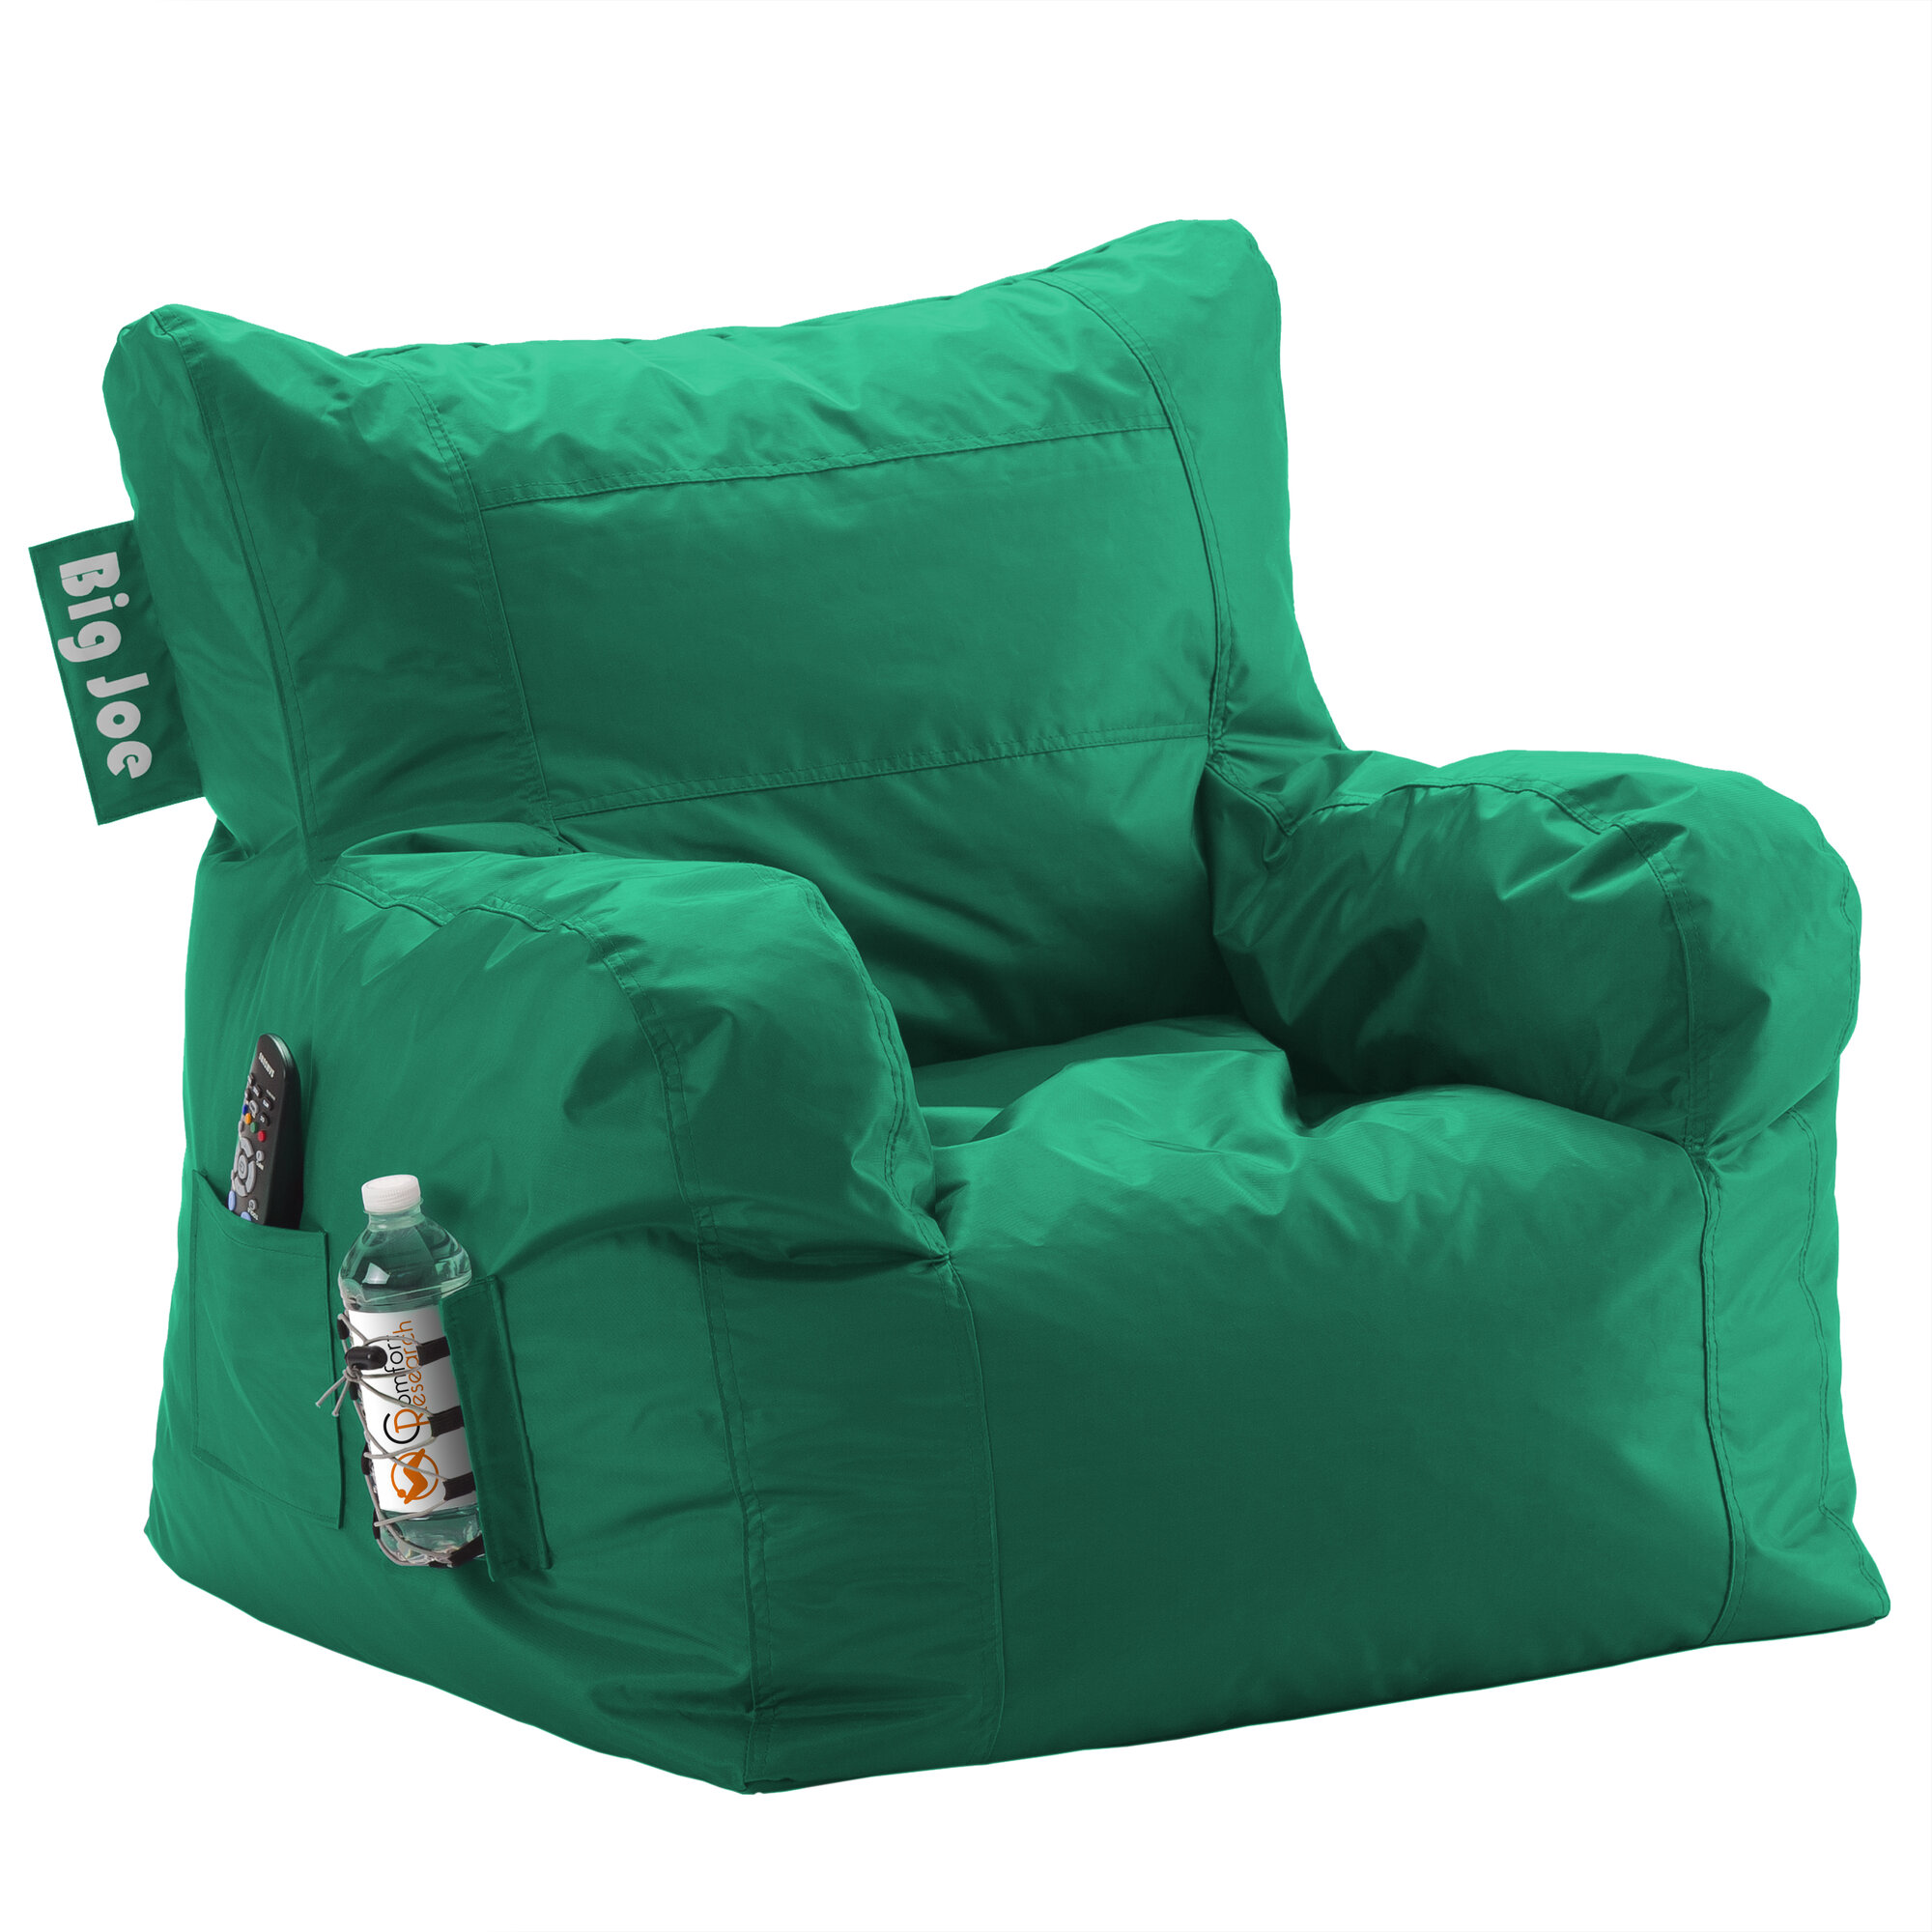 Big Joe Bean Bags Amazon Coupon Jewelry